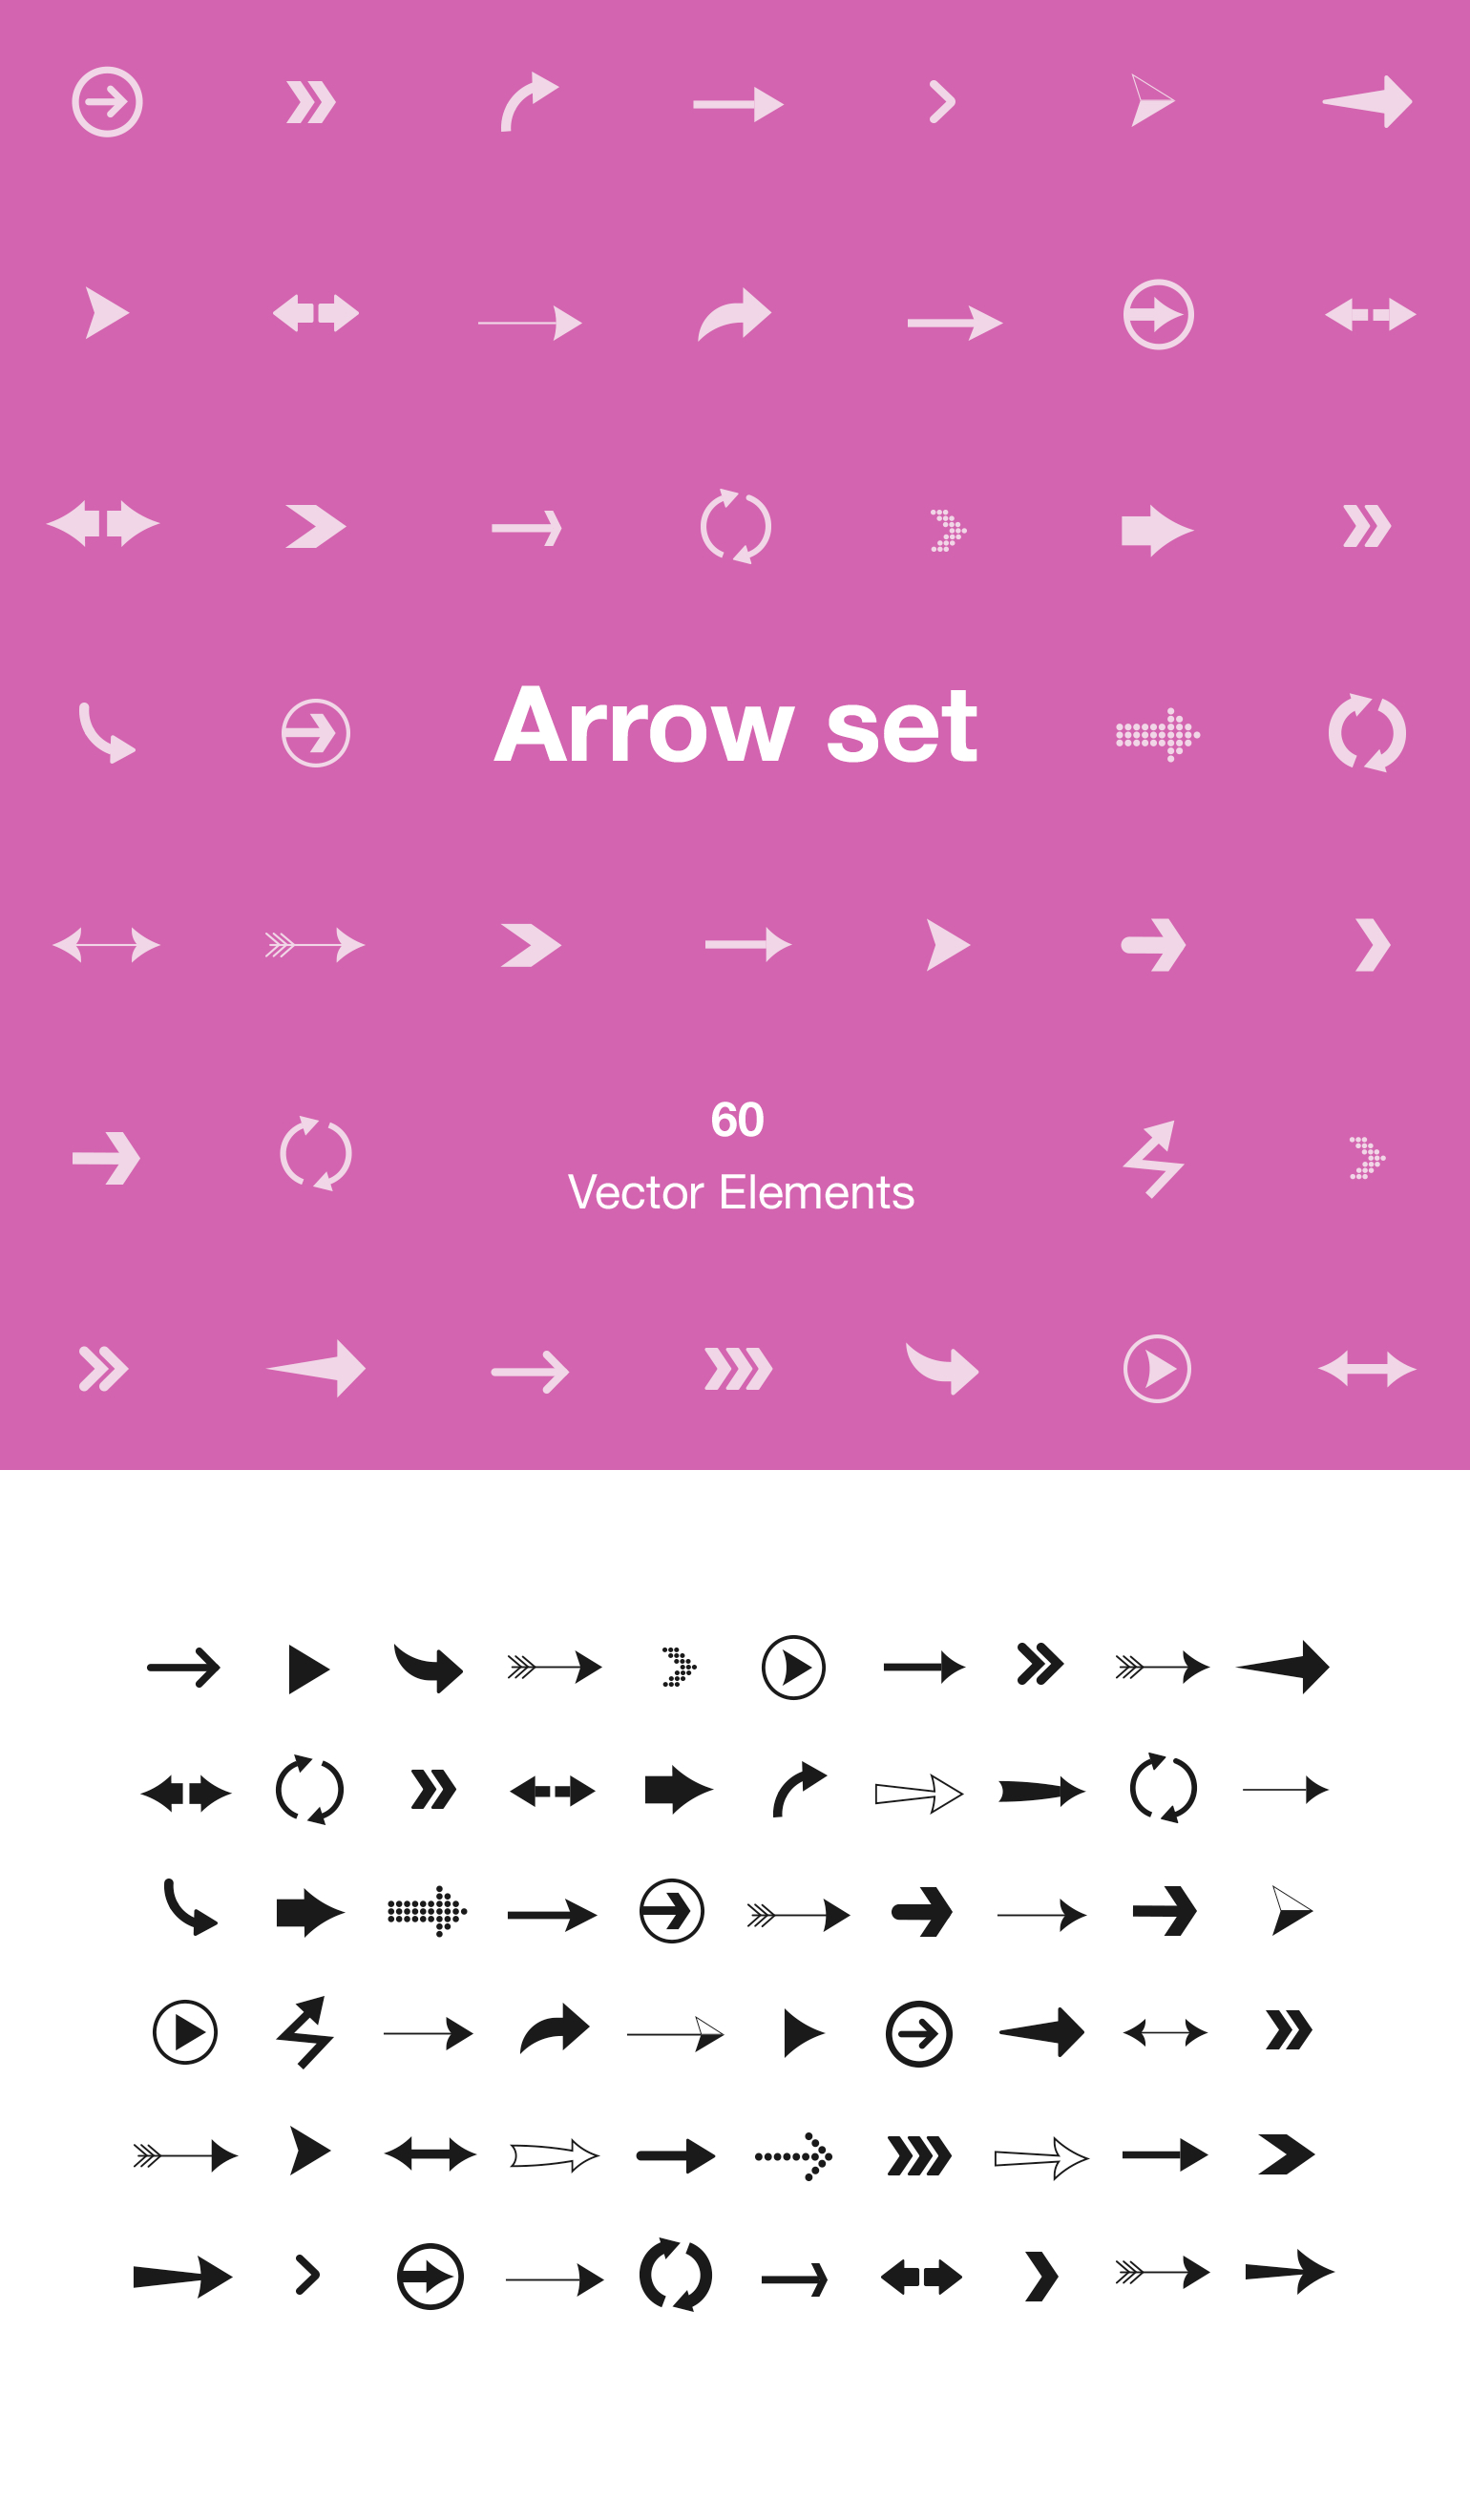 Arrow Set - 60 Vector Elements - This resource contains 60 vector based arrows that can be used by designers and developers. Use the arrows in your mobile app, on your website or in presentations and change the colors to make them fit into your theme.